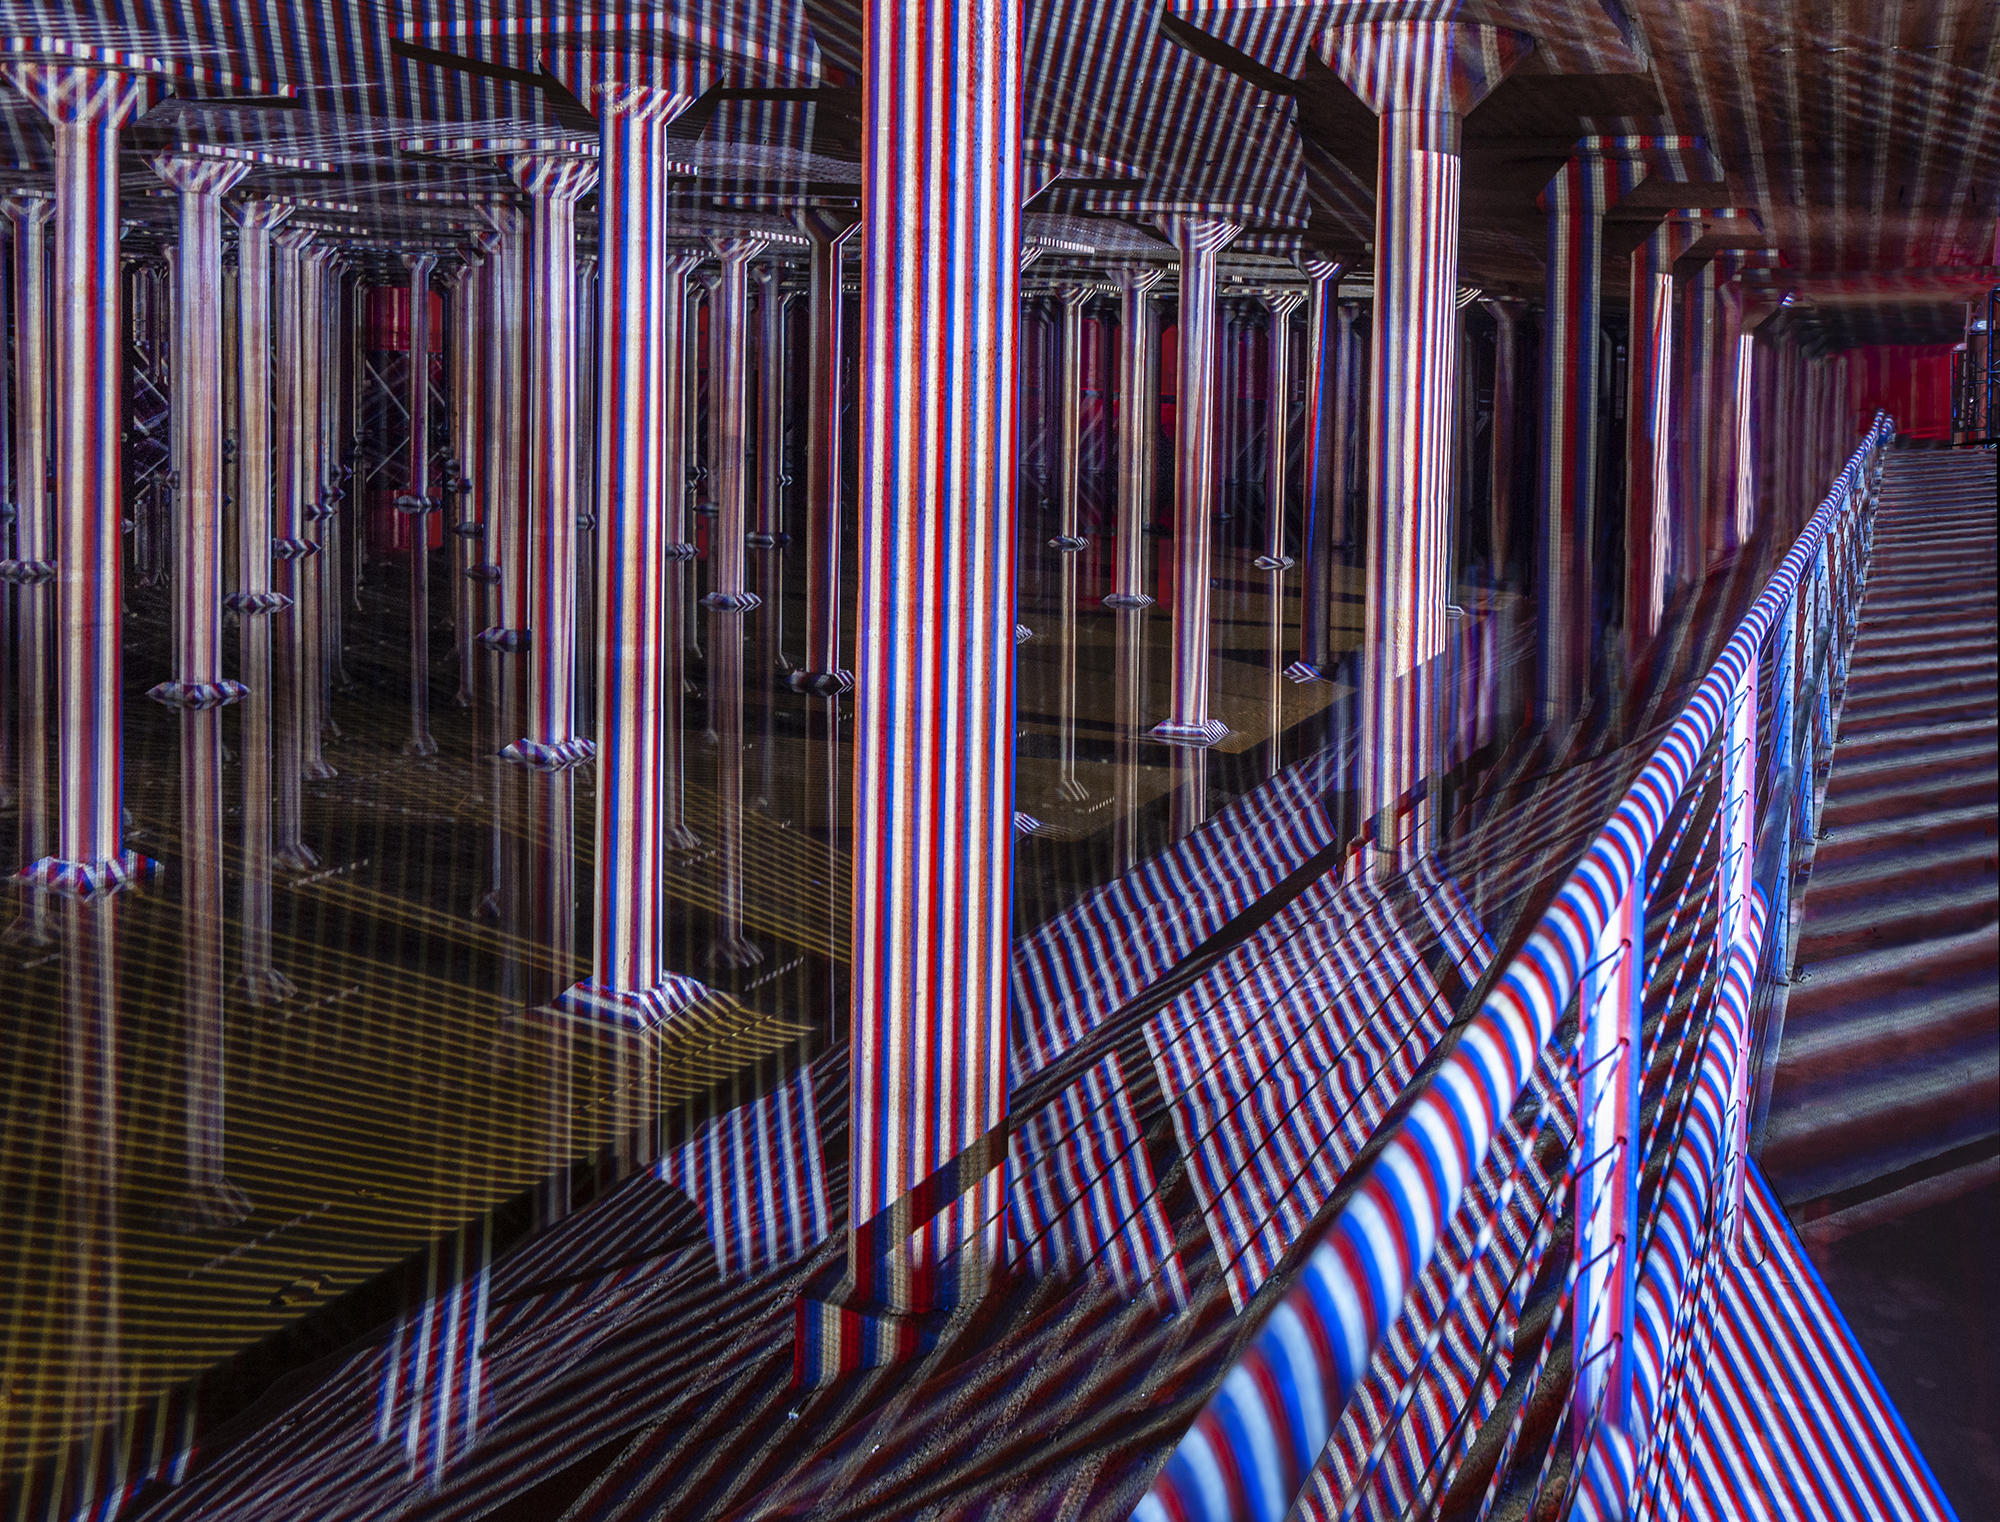 Carlos Cruz-Diez at the Cistern: Spatial Chromointerference. © Carlos Cruz-Diez / ADAGP, Paris 2018. Photo by Paul Hester.